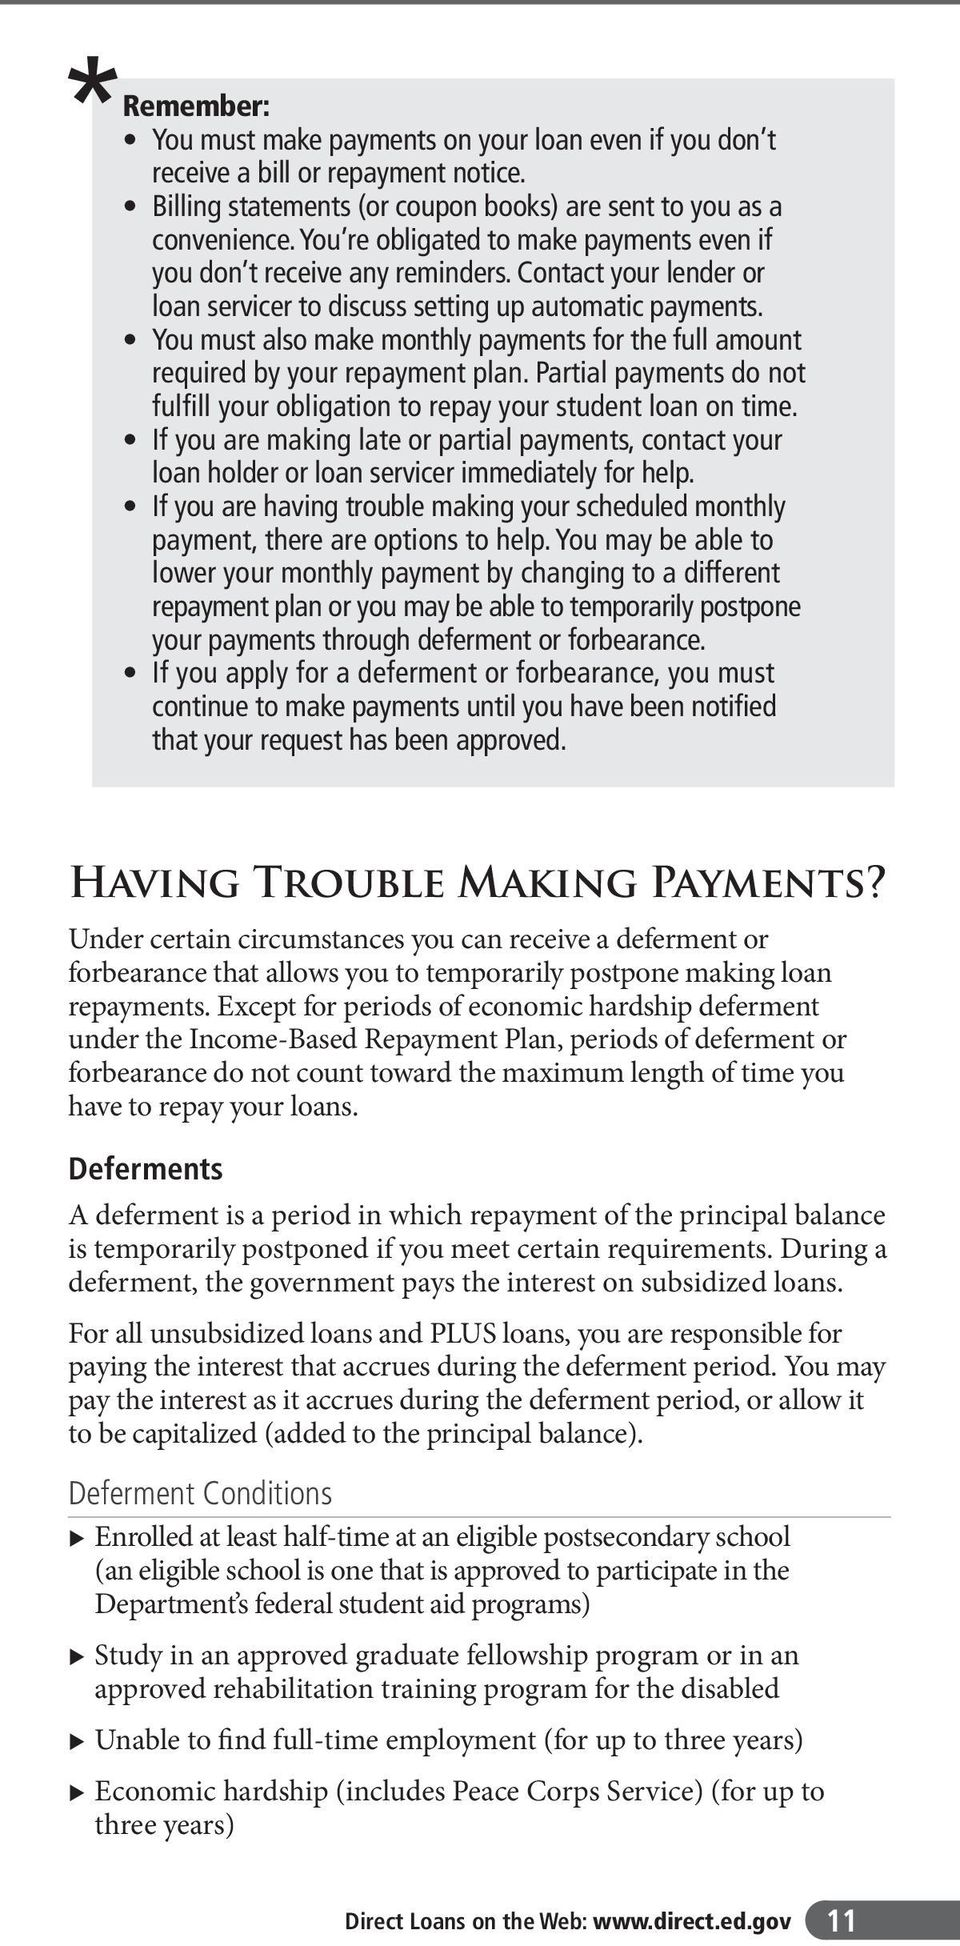 You must also make monthly payments for the full amount required by your repayment plan. Partial payments do not fulfill your obligation to repay your student loan on time.